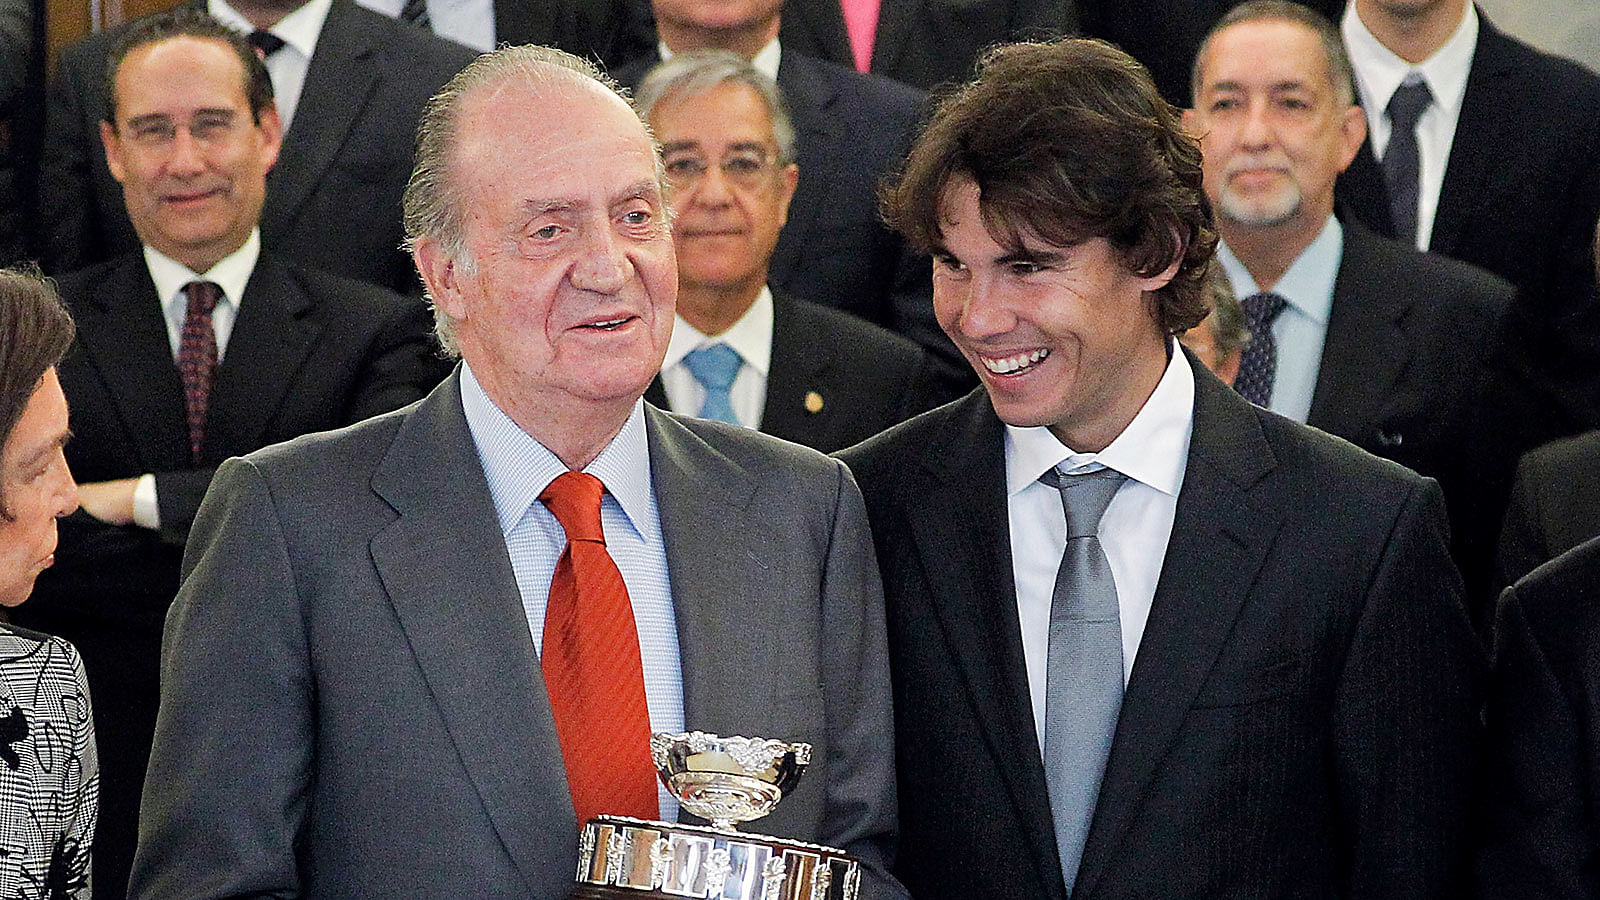 Rafael Nadal receives support from Spanish king Juan Carlos for French Open final